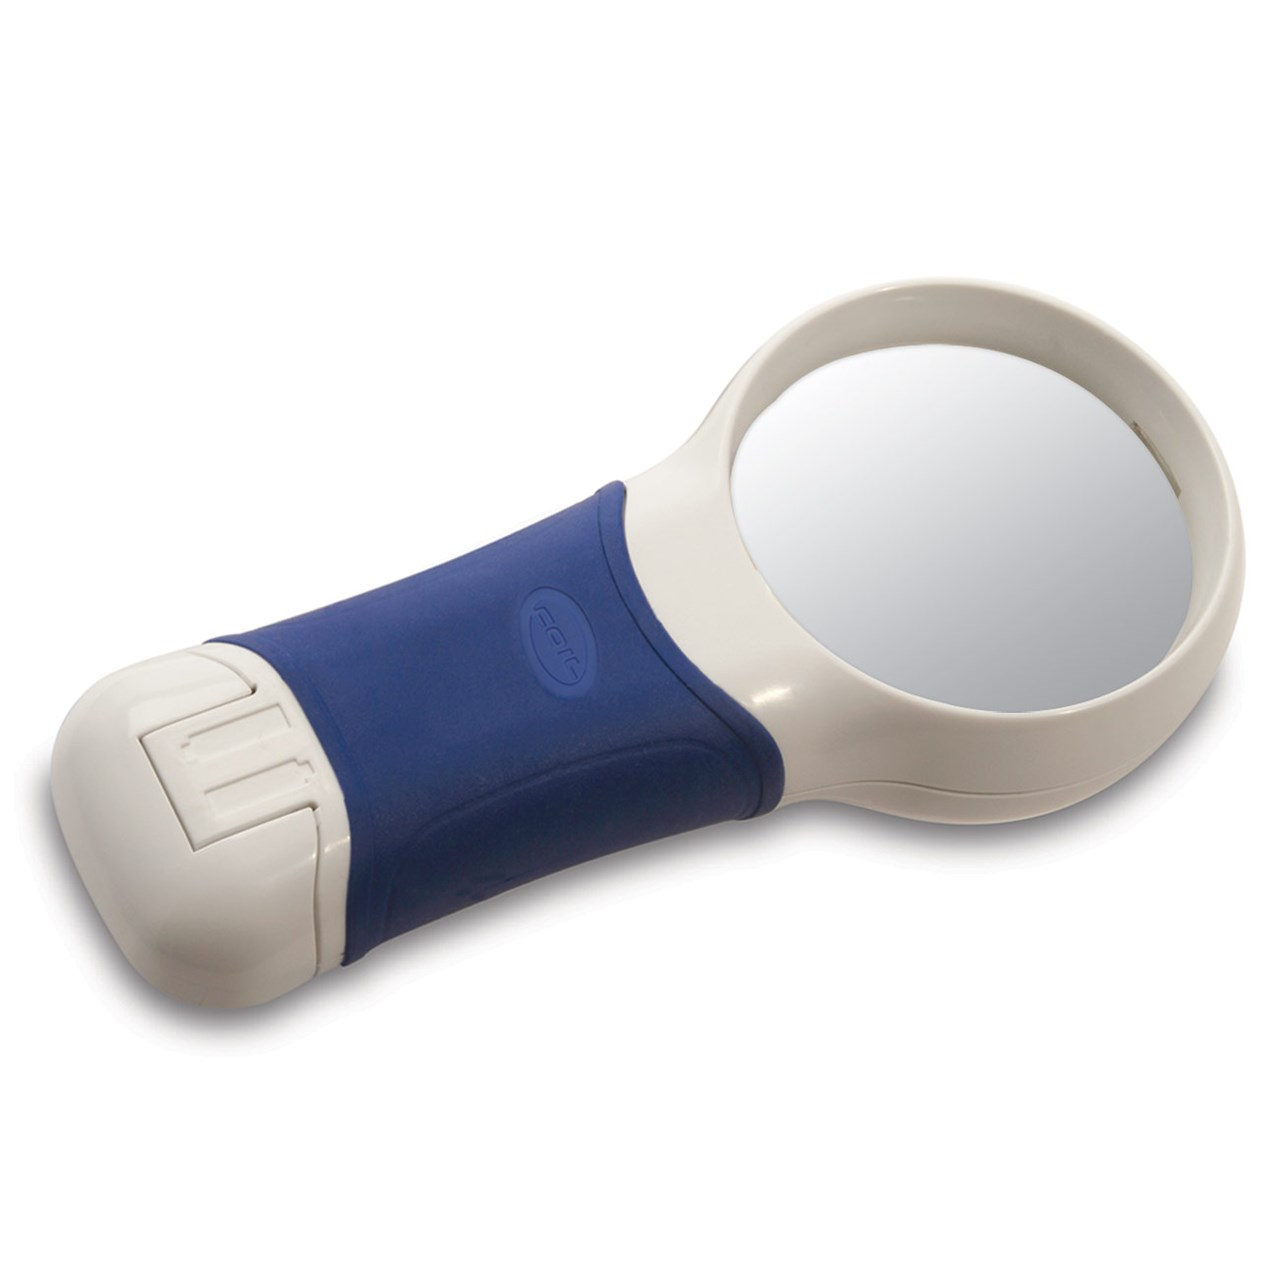 Coil AT-Max Auto Touch 5x LED Illuminated Magnifier: Round